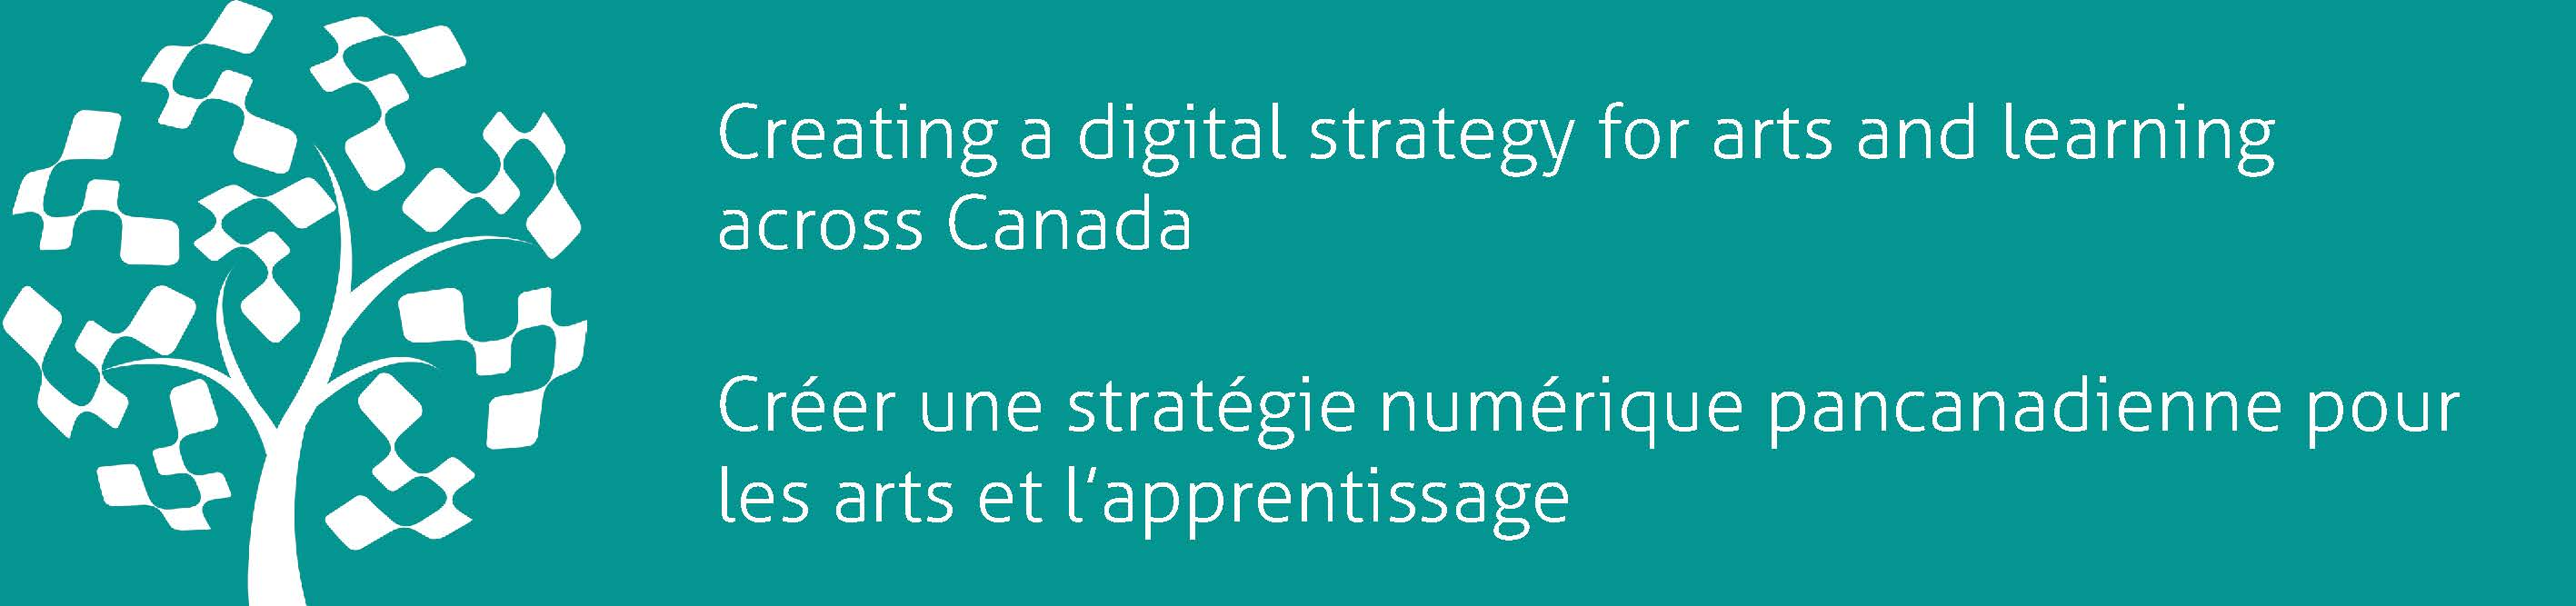 Creating a digital strategy for arts and learning across Canada / Créer une stratégie numérique pancanadienne pour les arts et l'apprentissage